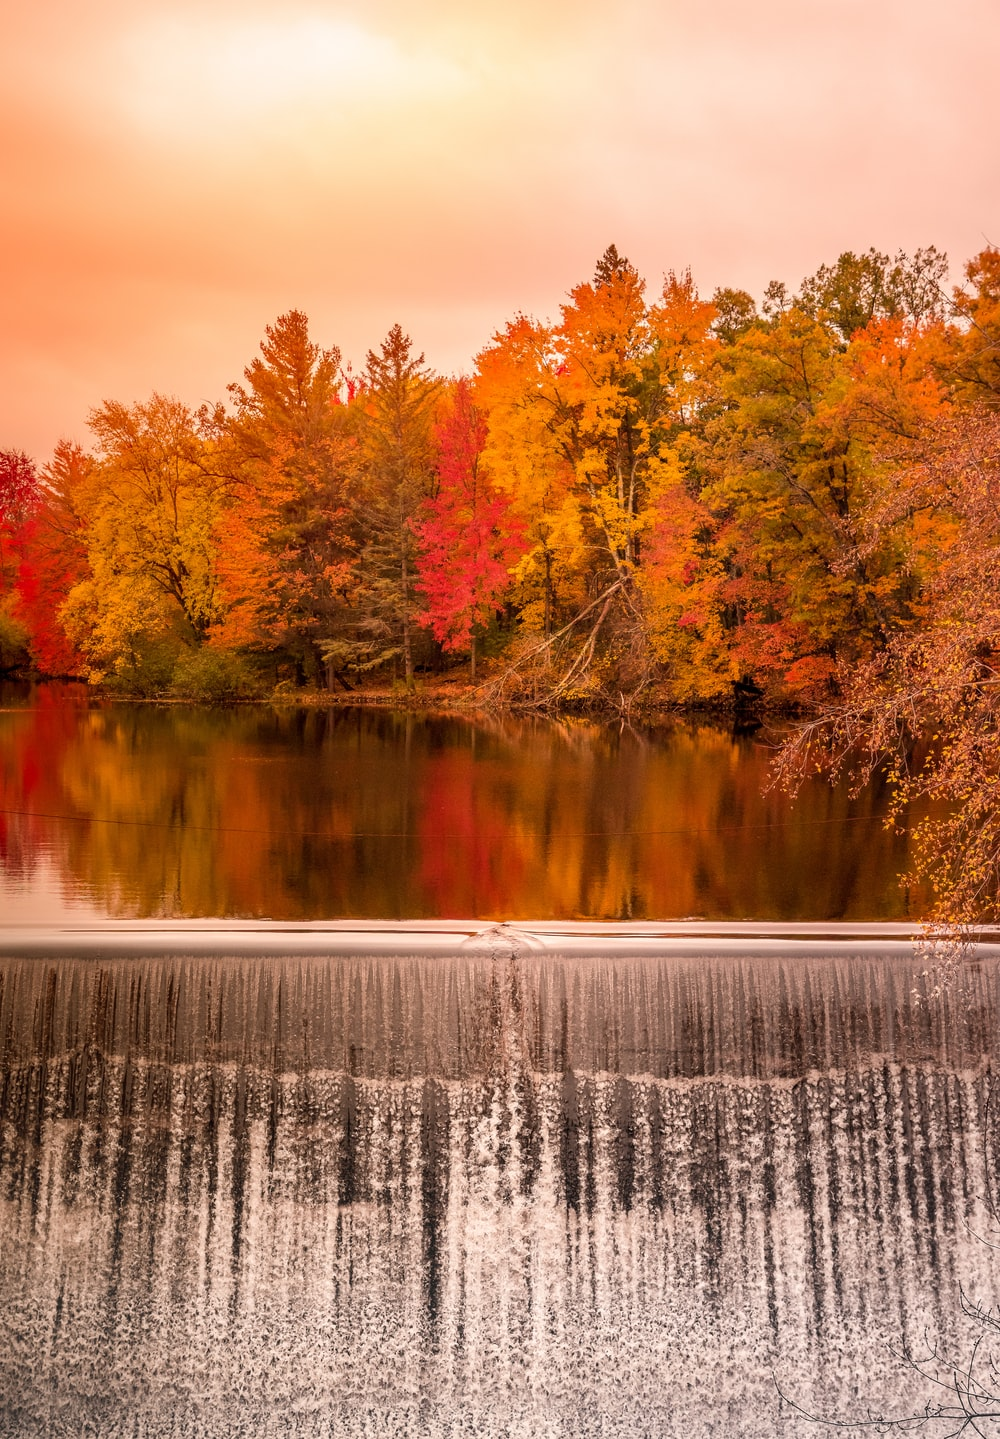 dam among autumn color trees